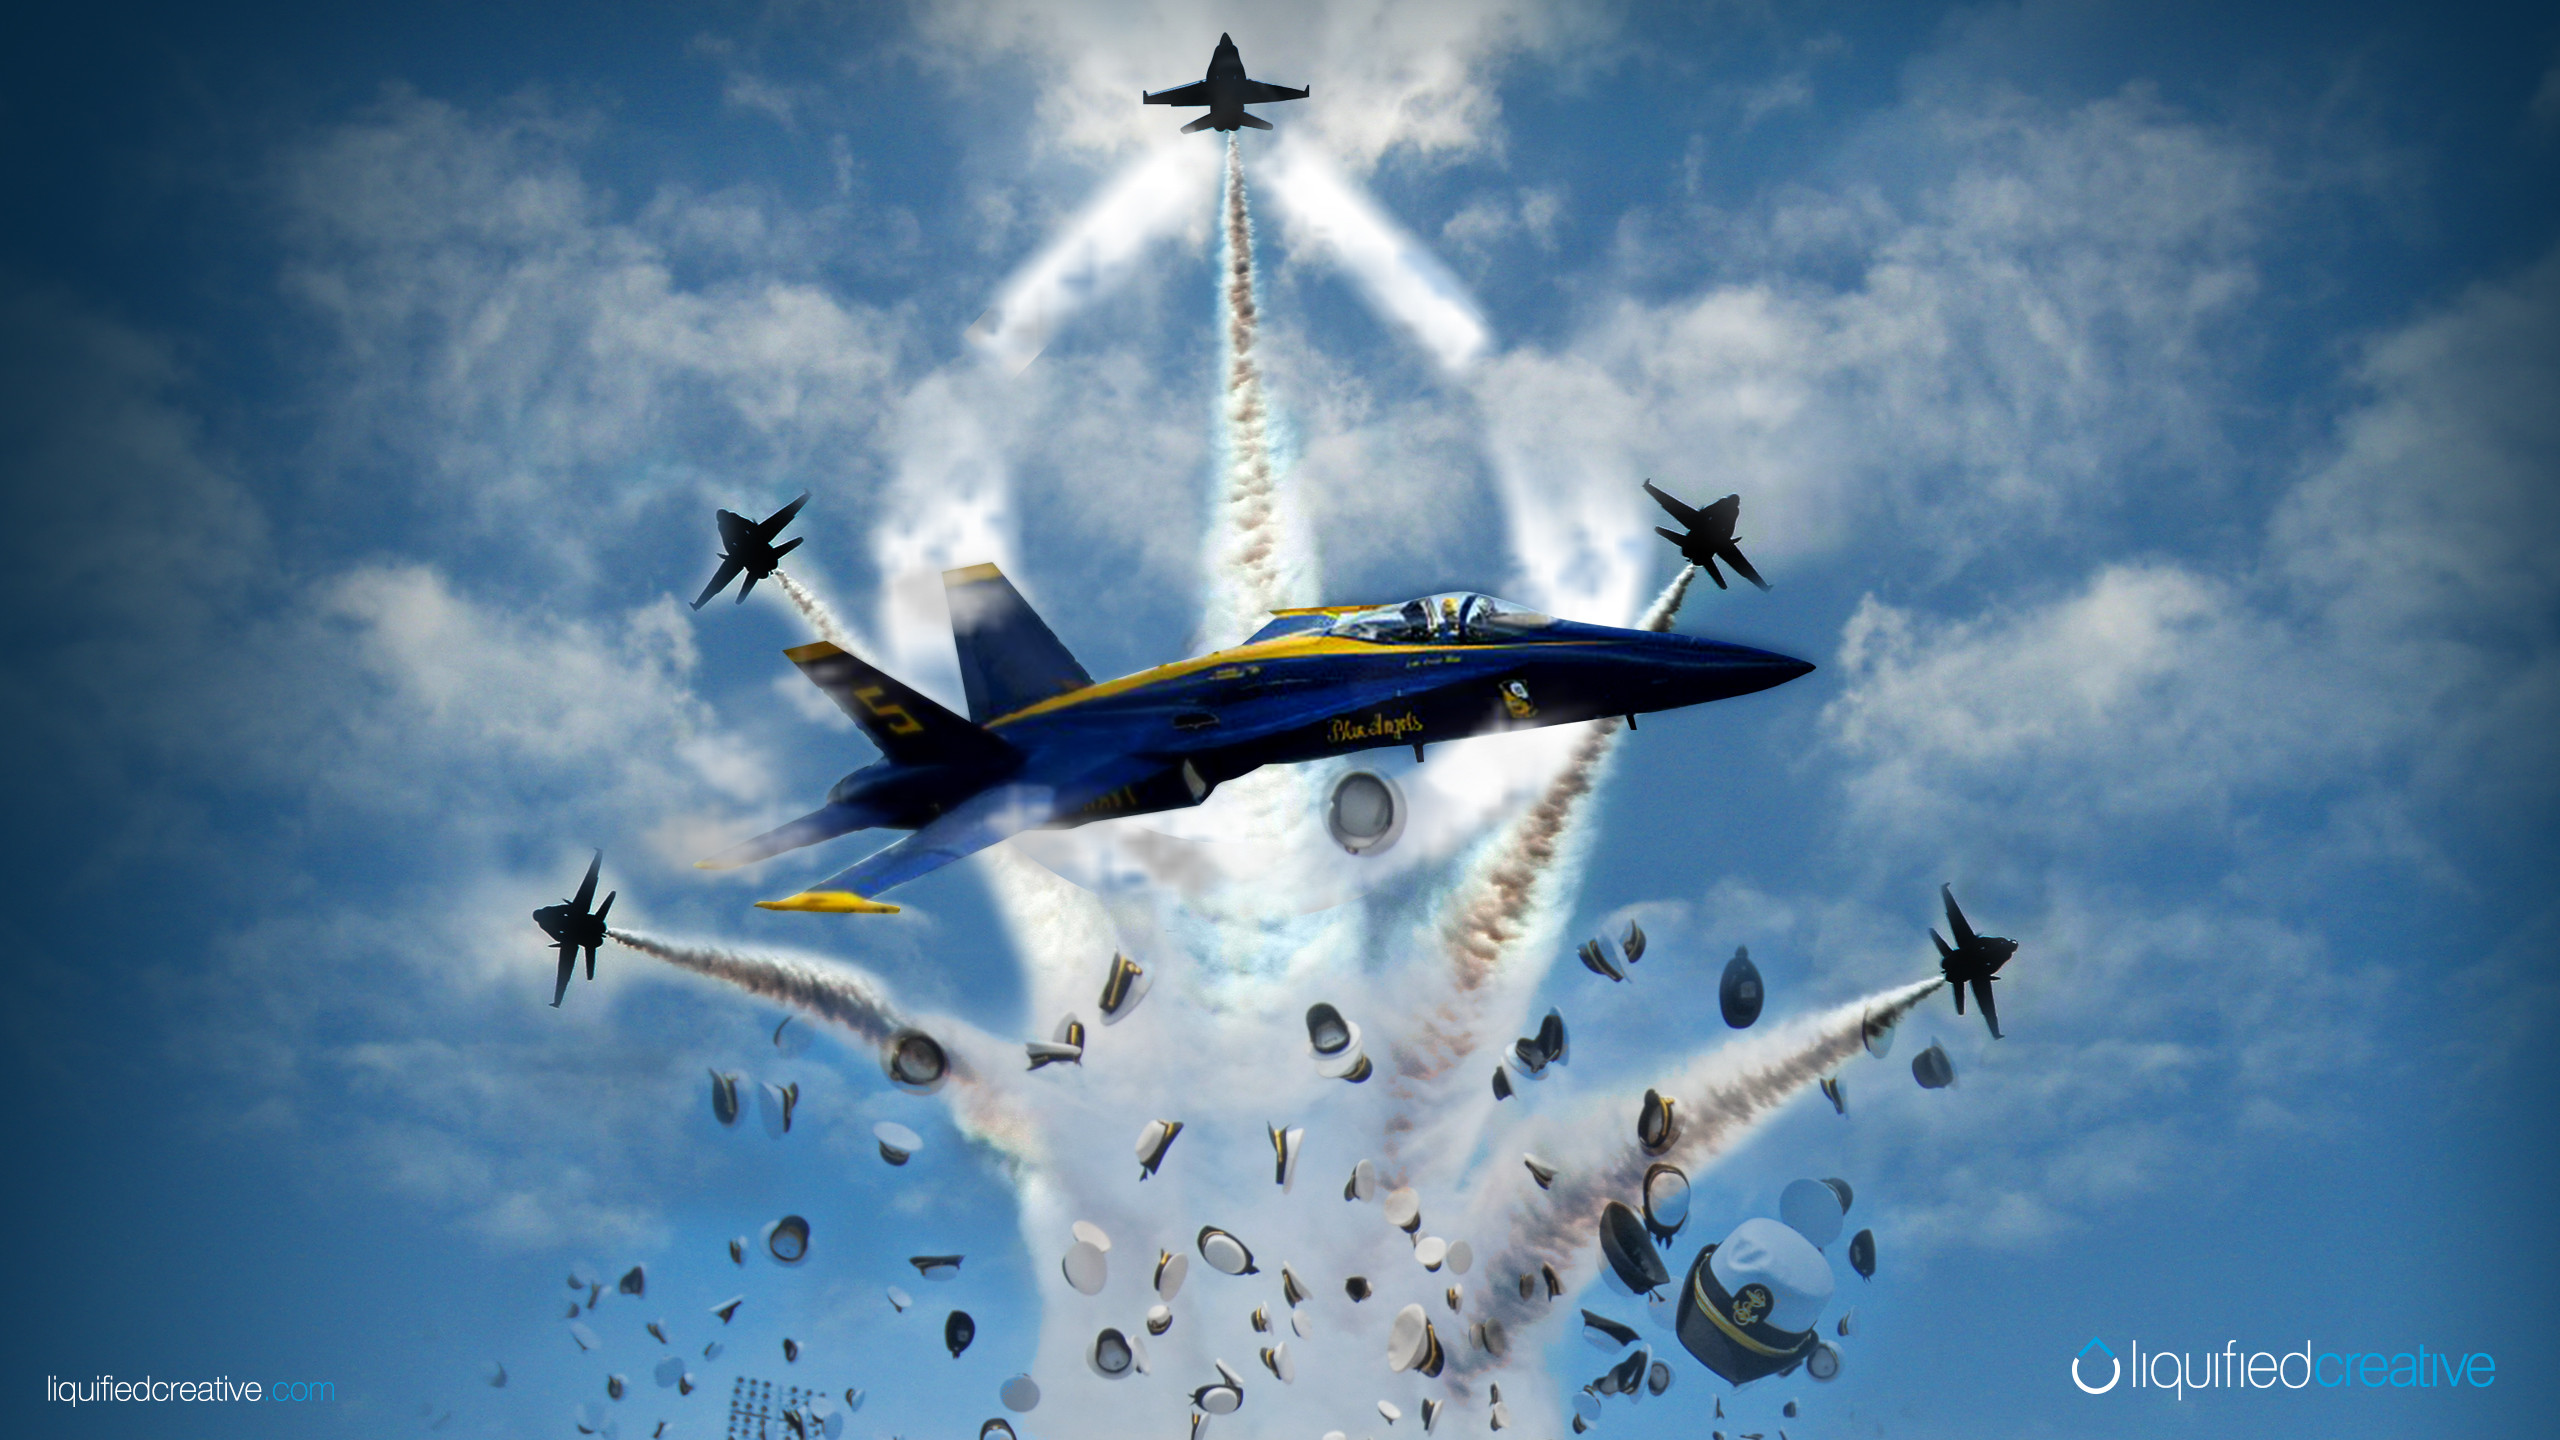 2560x1440 Previous Blue Angels/U.S. Naval Academy Graduation Screensavers